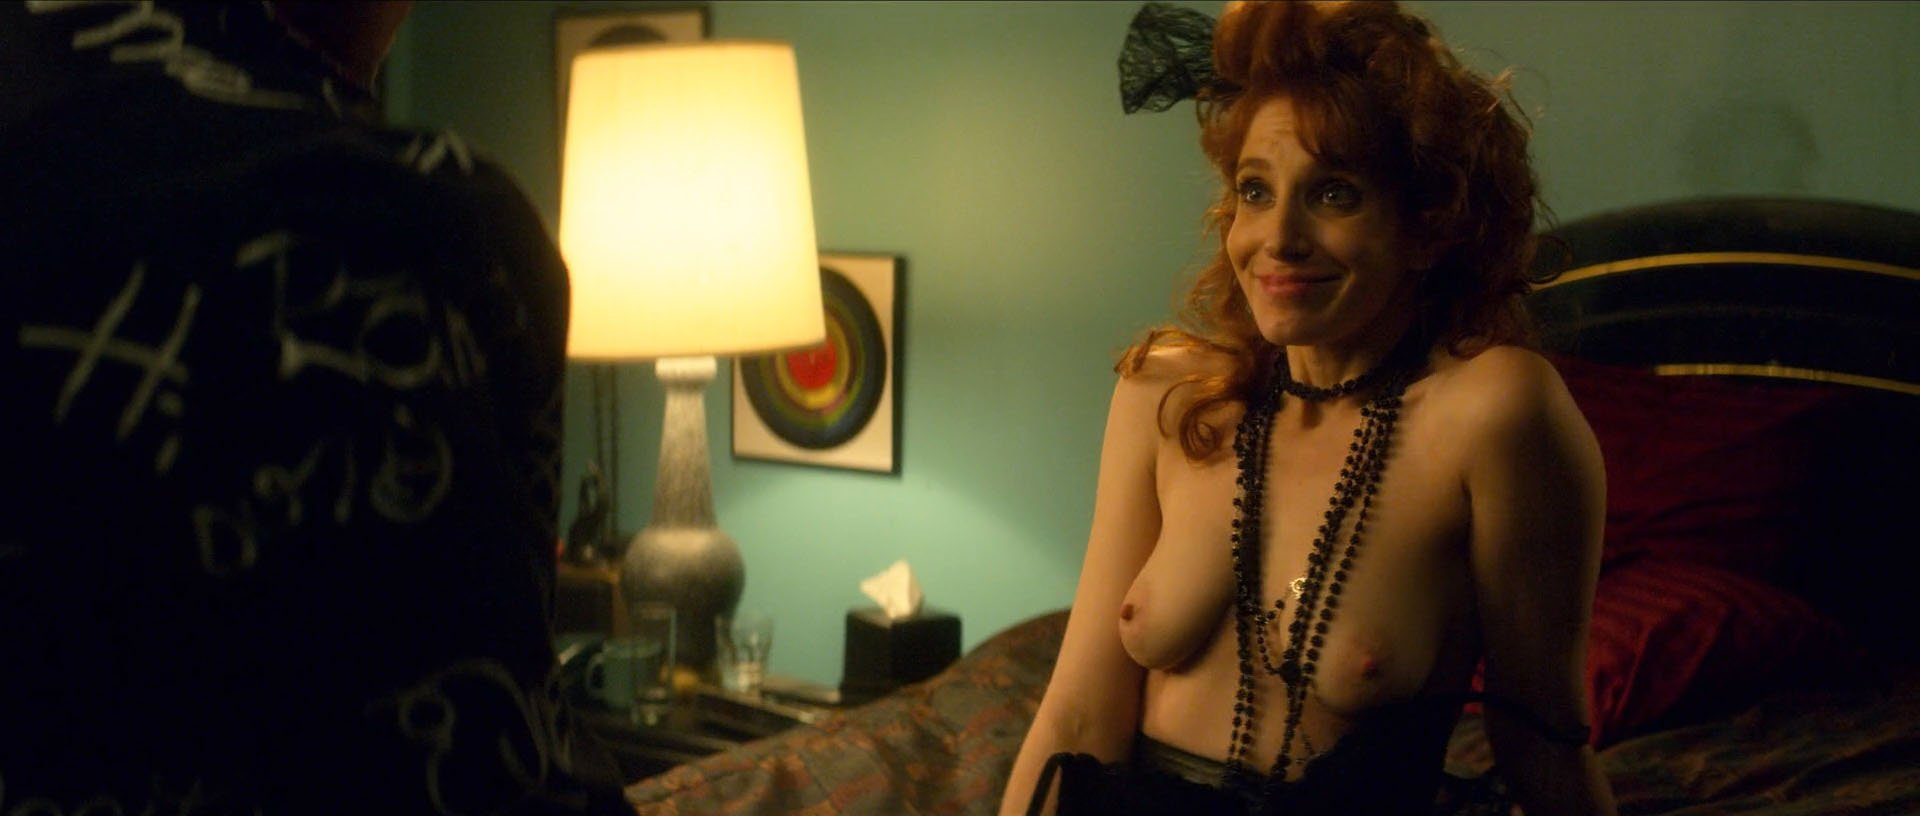 Gwen Hollander nude - Future Man s01e10 (2017)